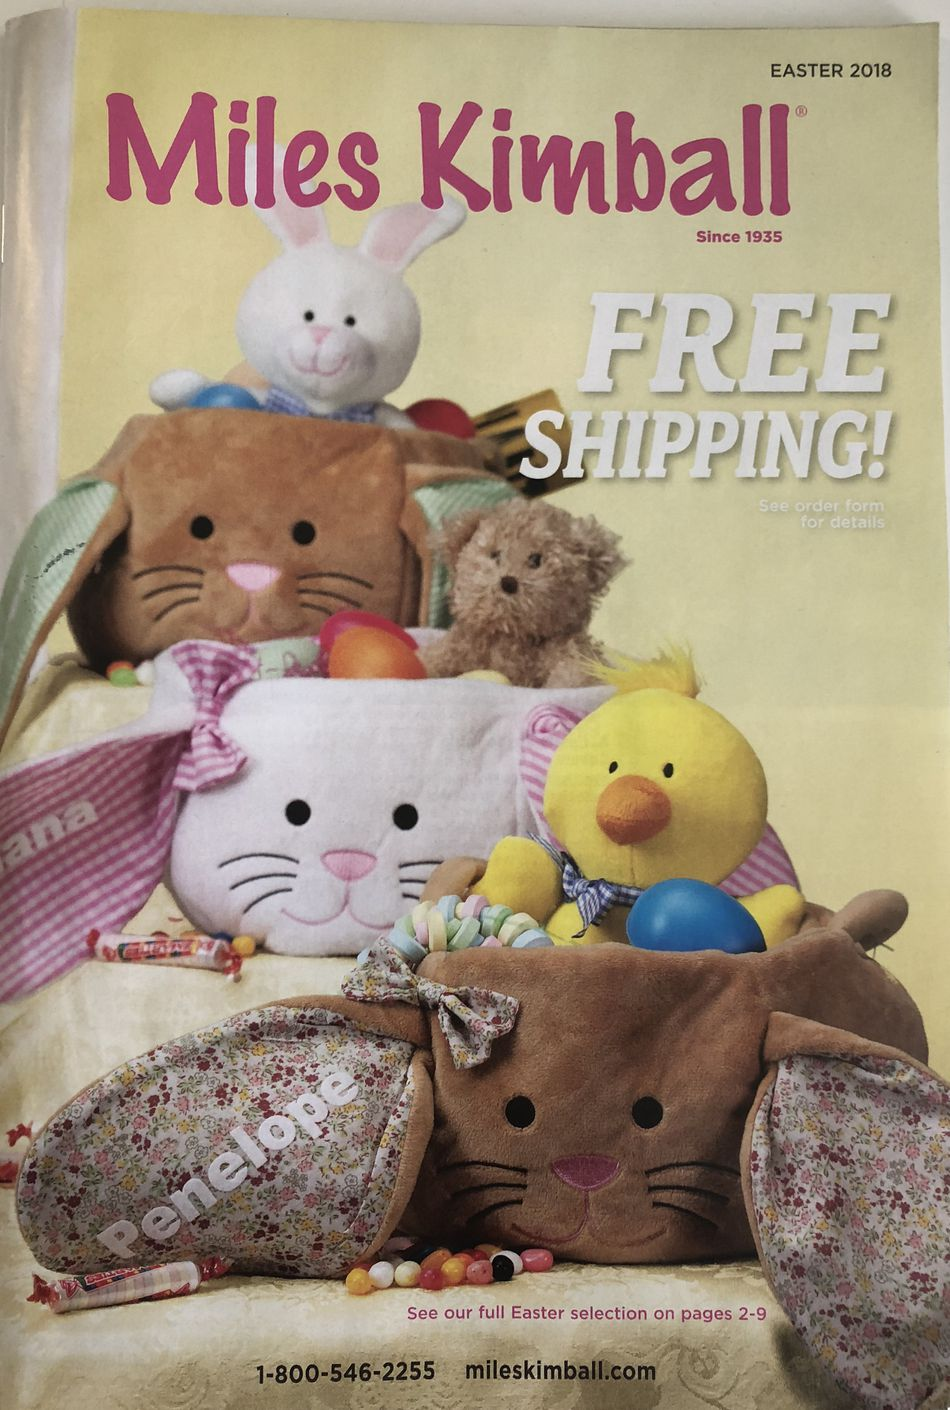 Get free mail order gift catalogs the easter 2018 miles kimball catalog negle Image collections